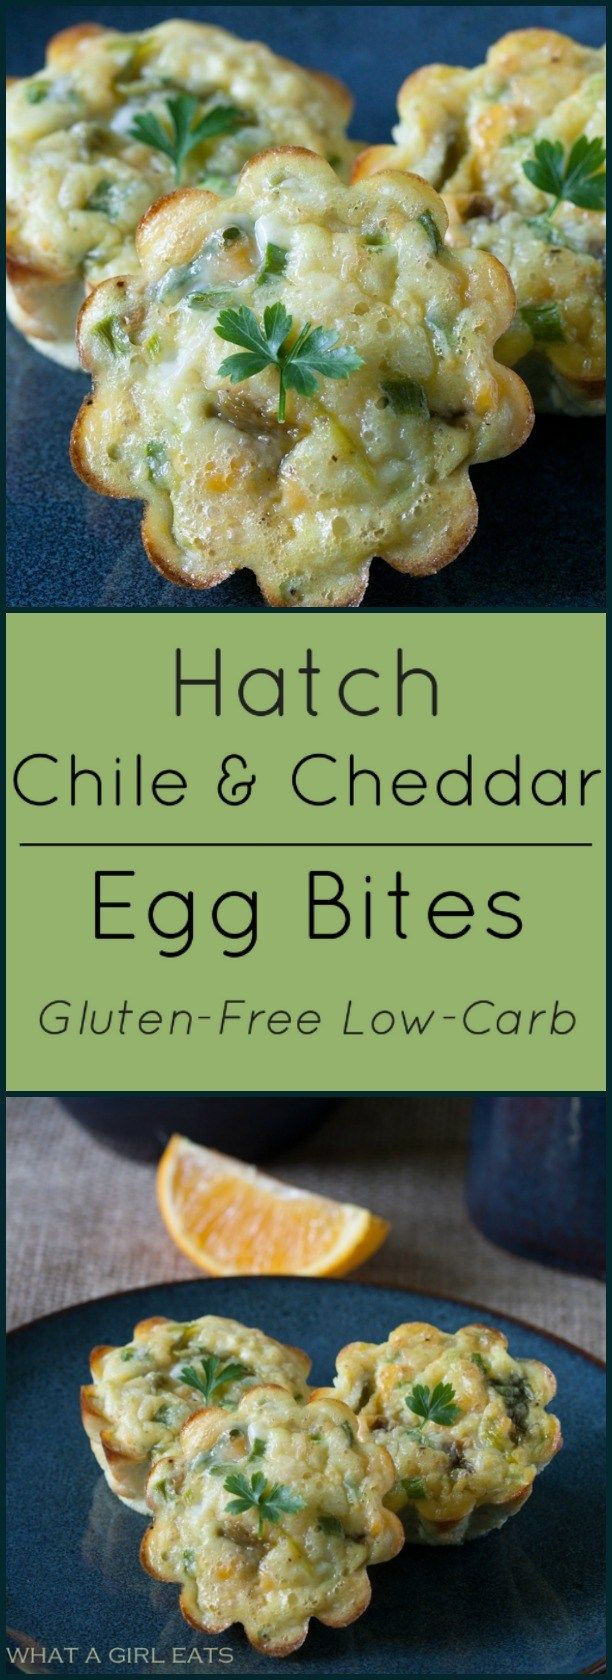 Hatch Chile and Cheddar Egg Bites. Low-carb, gluten free. A perfect quick healthy breakfast.